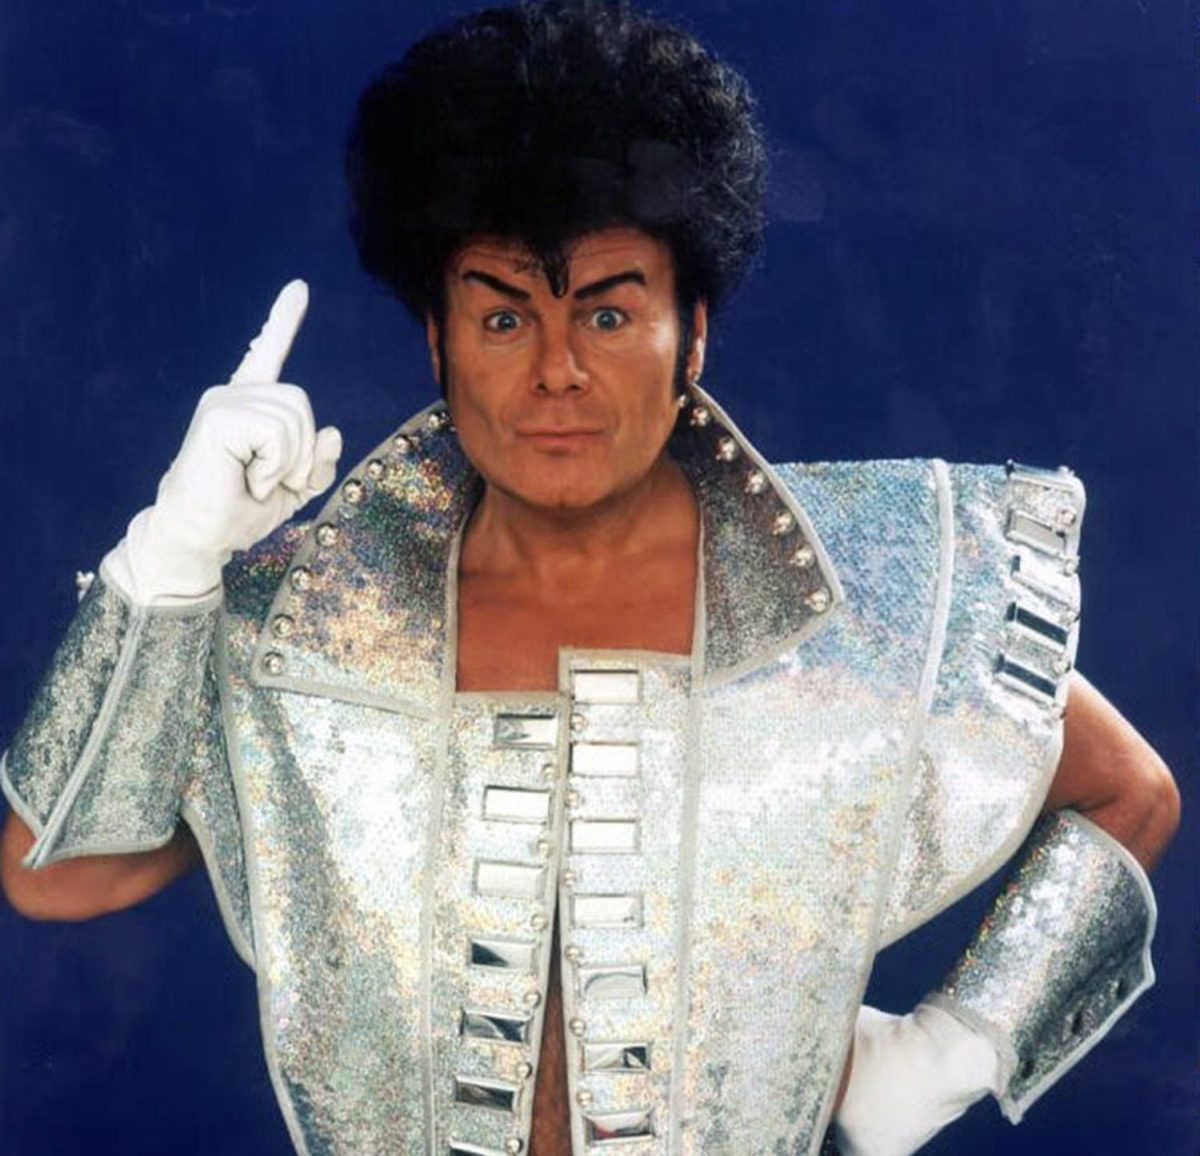 Tales of Rock – Gary Glitter Has Put A Lot Of Effort Into Being A Pedophile